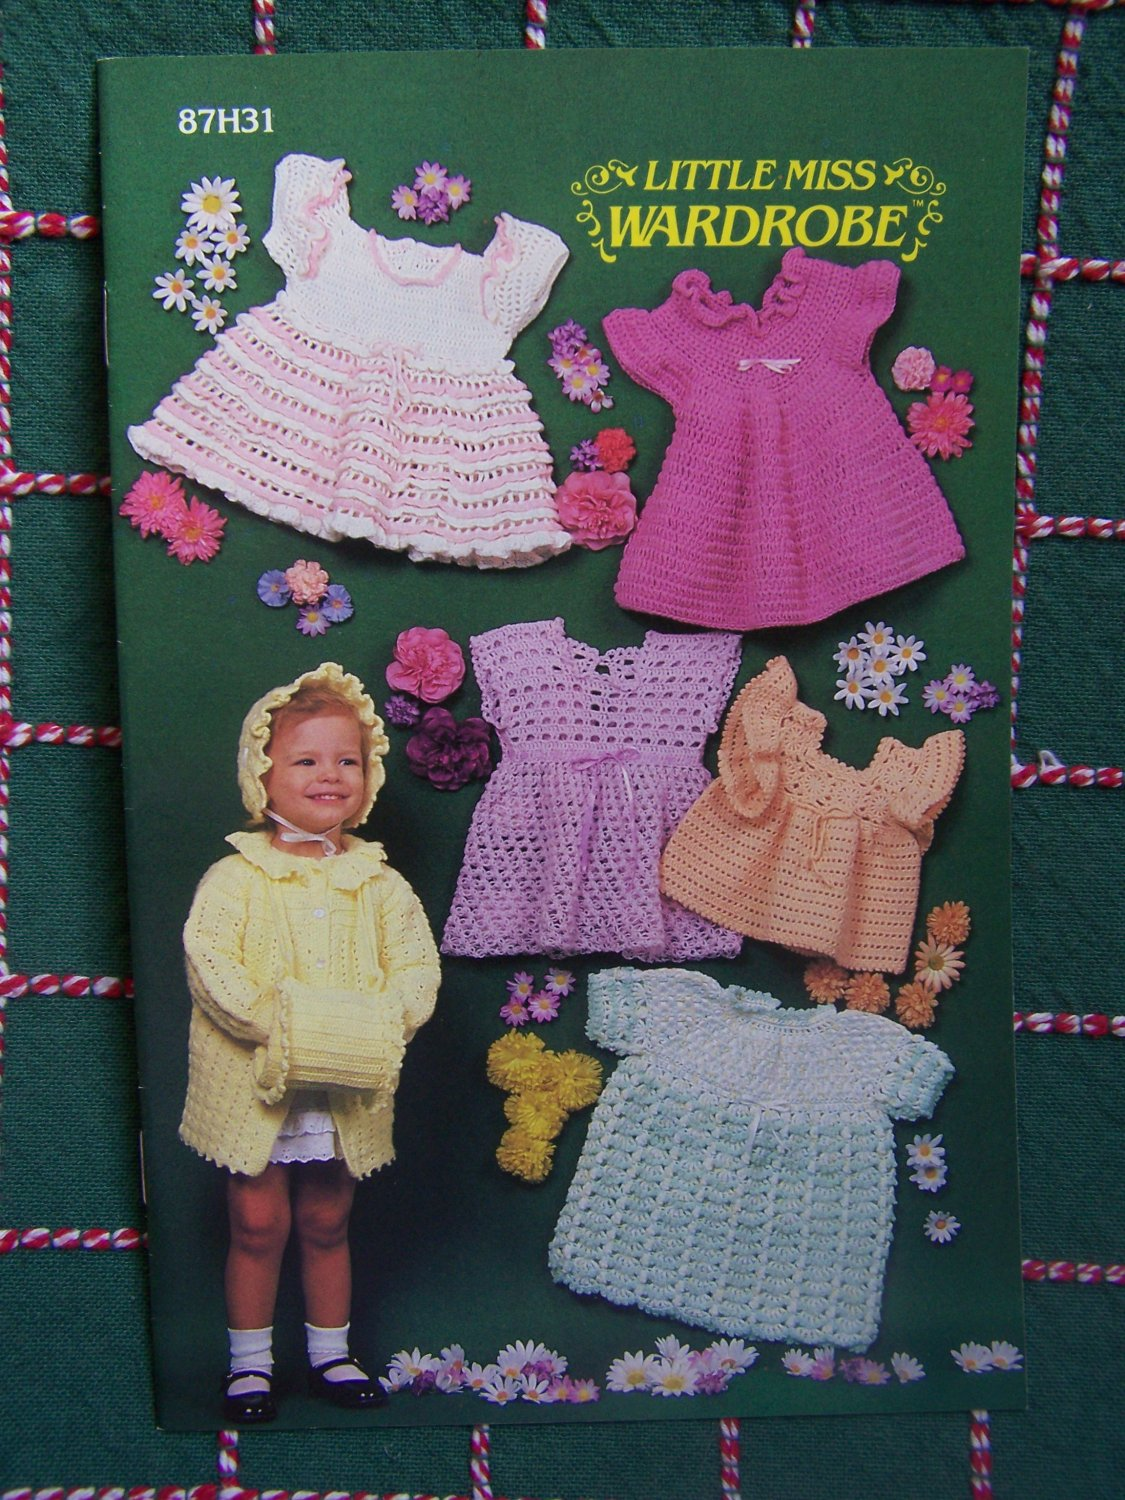 Annie's Pattern Club Book Little Miss Wardrobe Crochet 5 Dresses Jacket Bonnet Muff 87H31